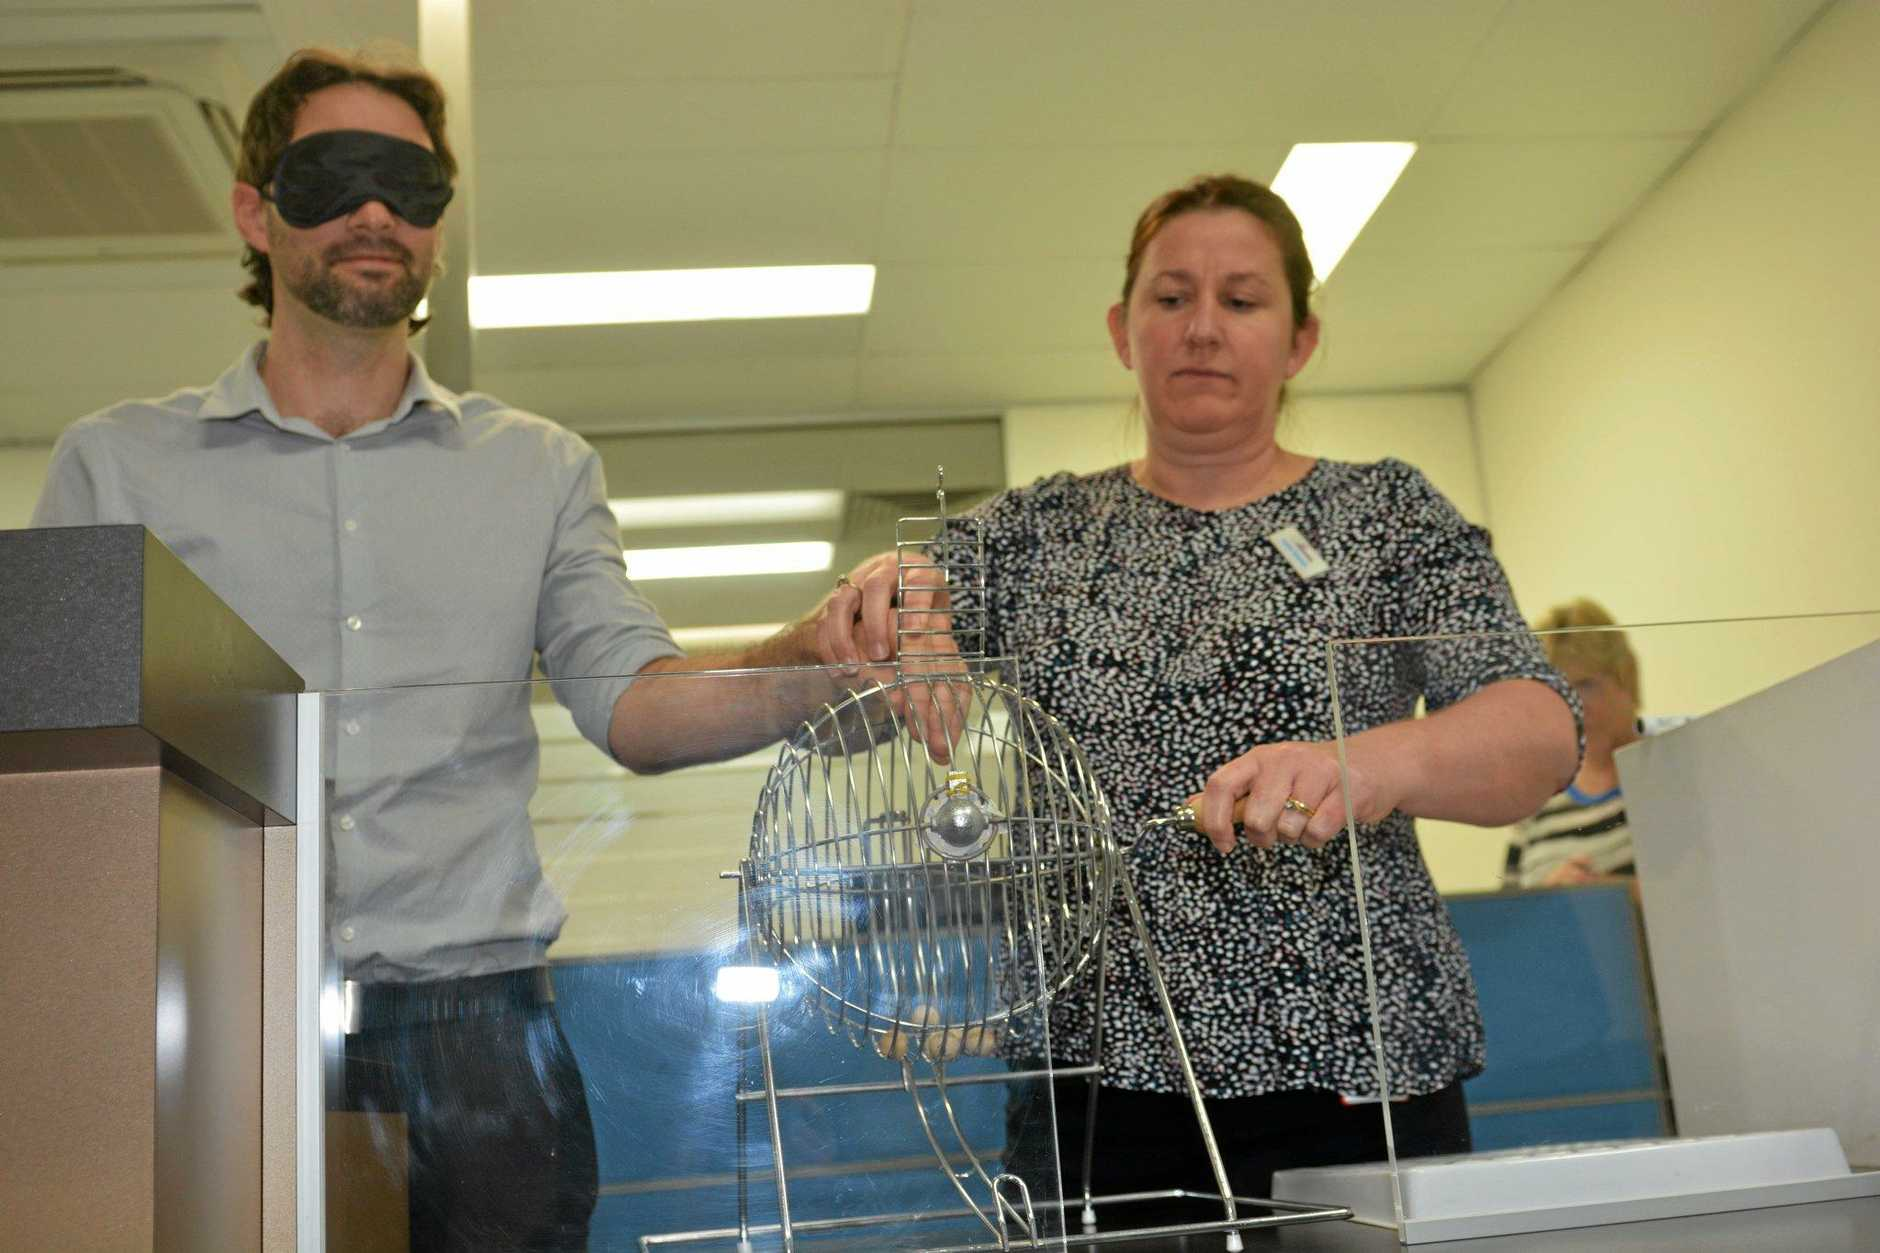 Australian Electoral Commission staff Brendan King and Jo Bowman conduct the blind draw for the 2016 Federal election ballot